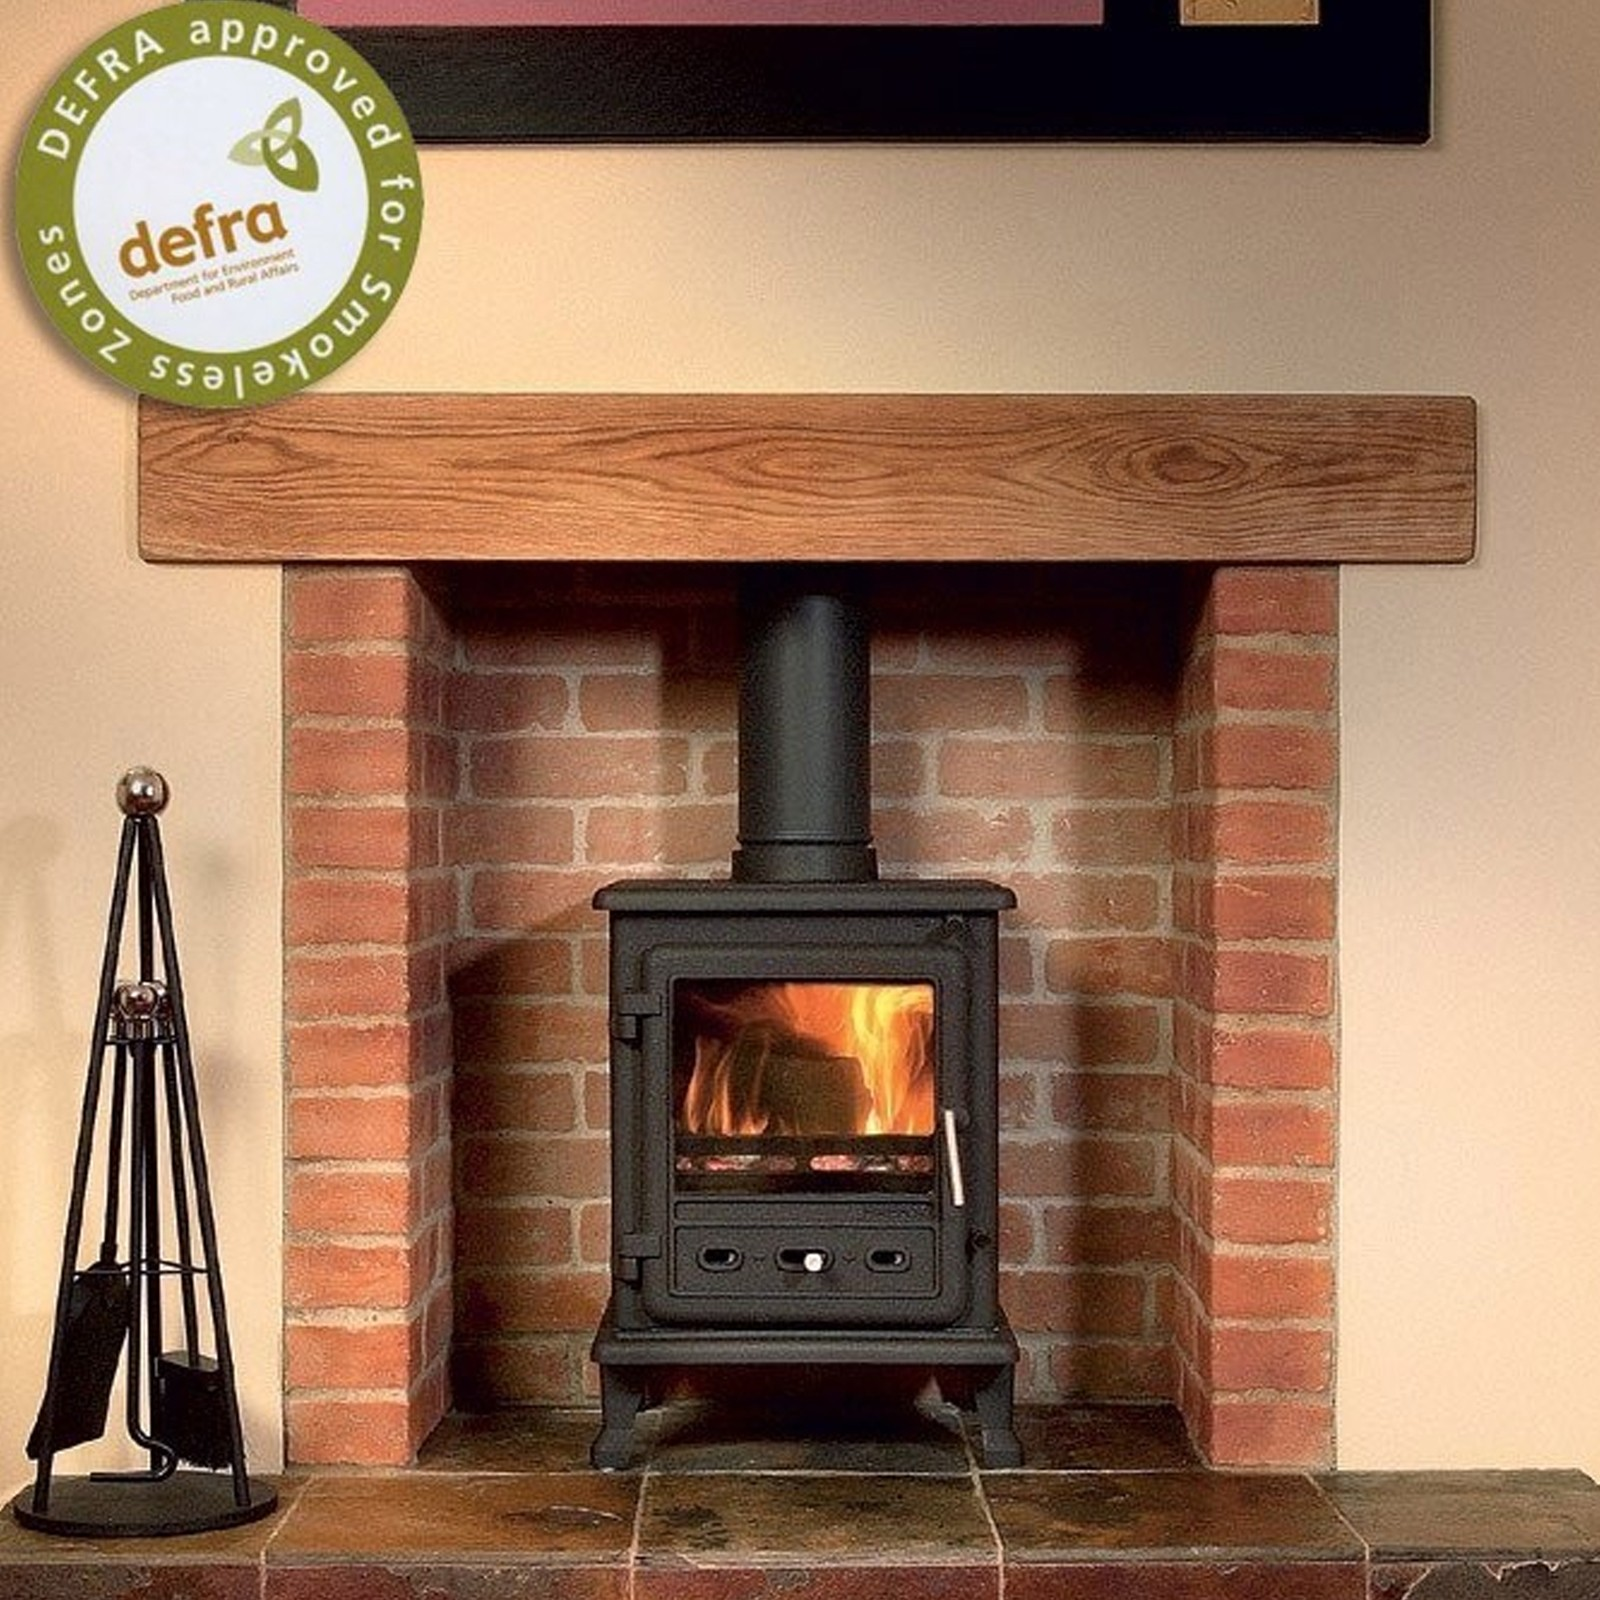 We offer you our quality products at amazing prices. Call us today on 01274 871010. We offer free delivery right to the room of your choice. product